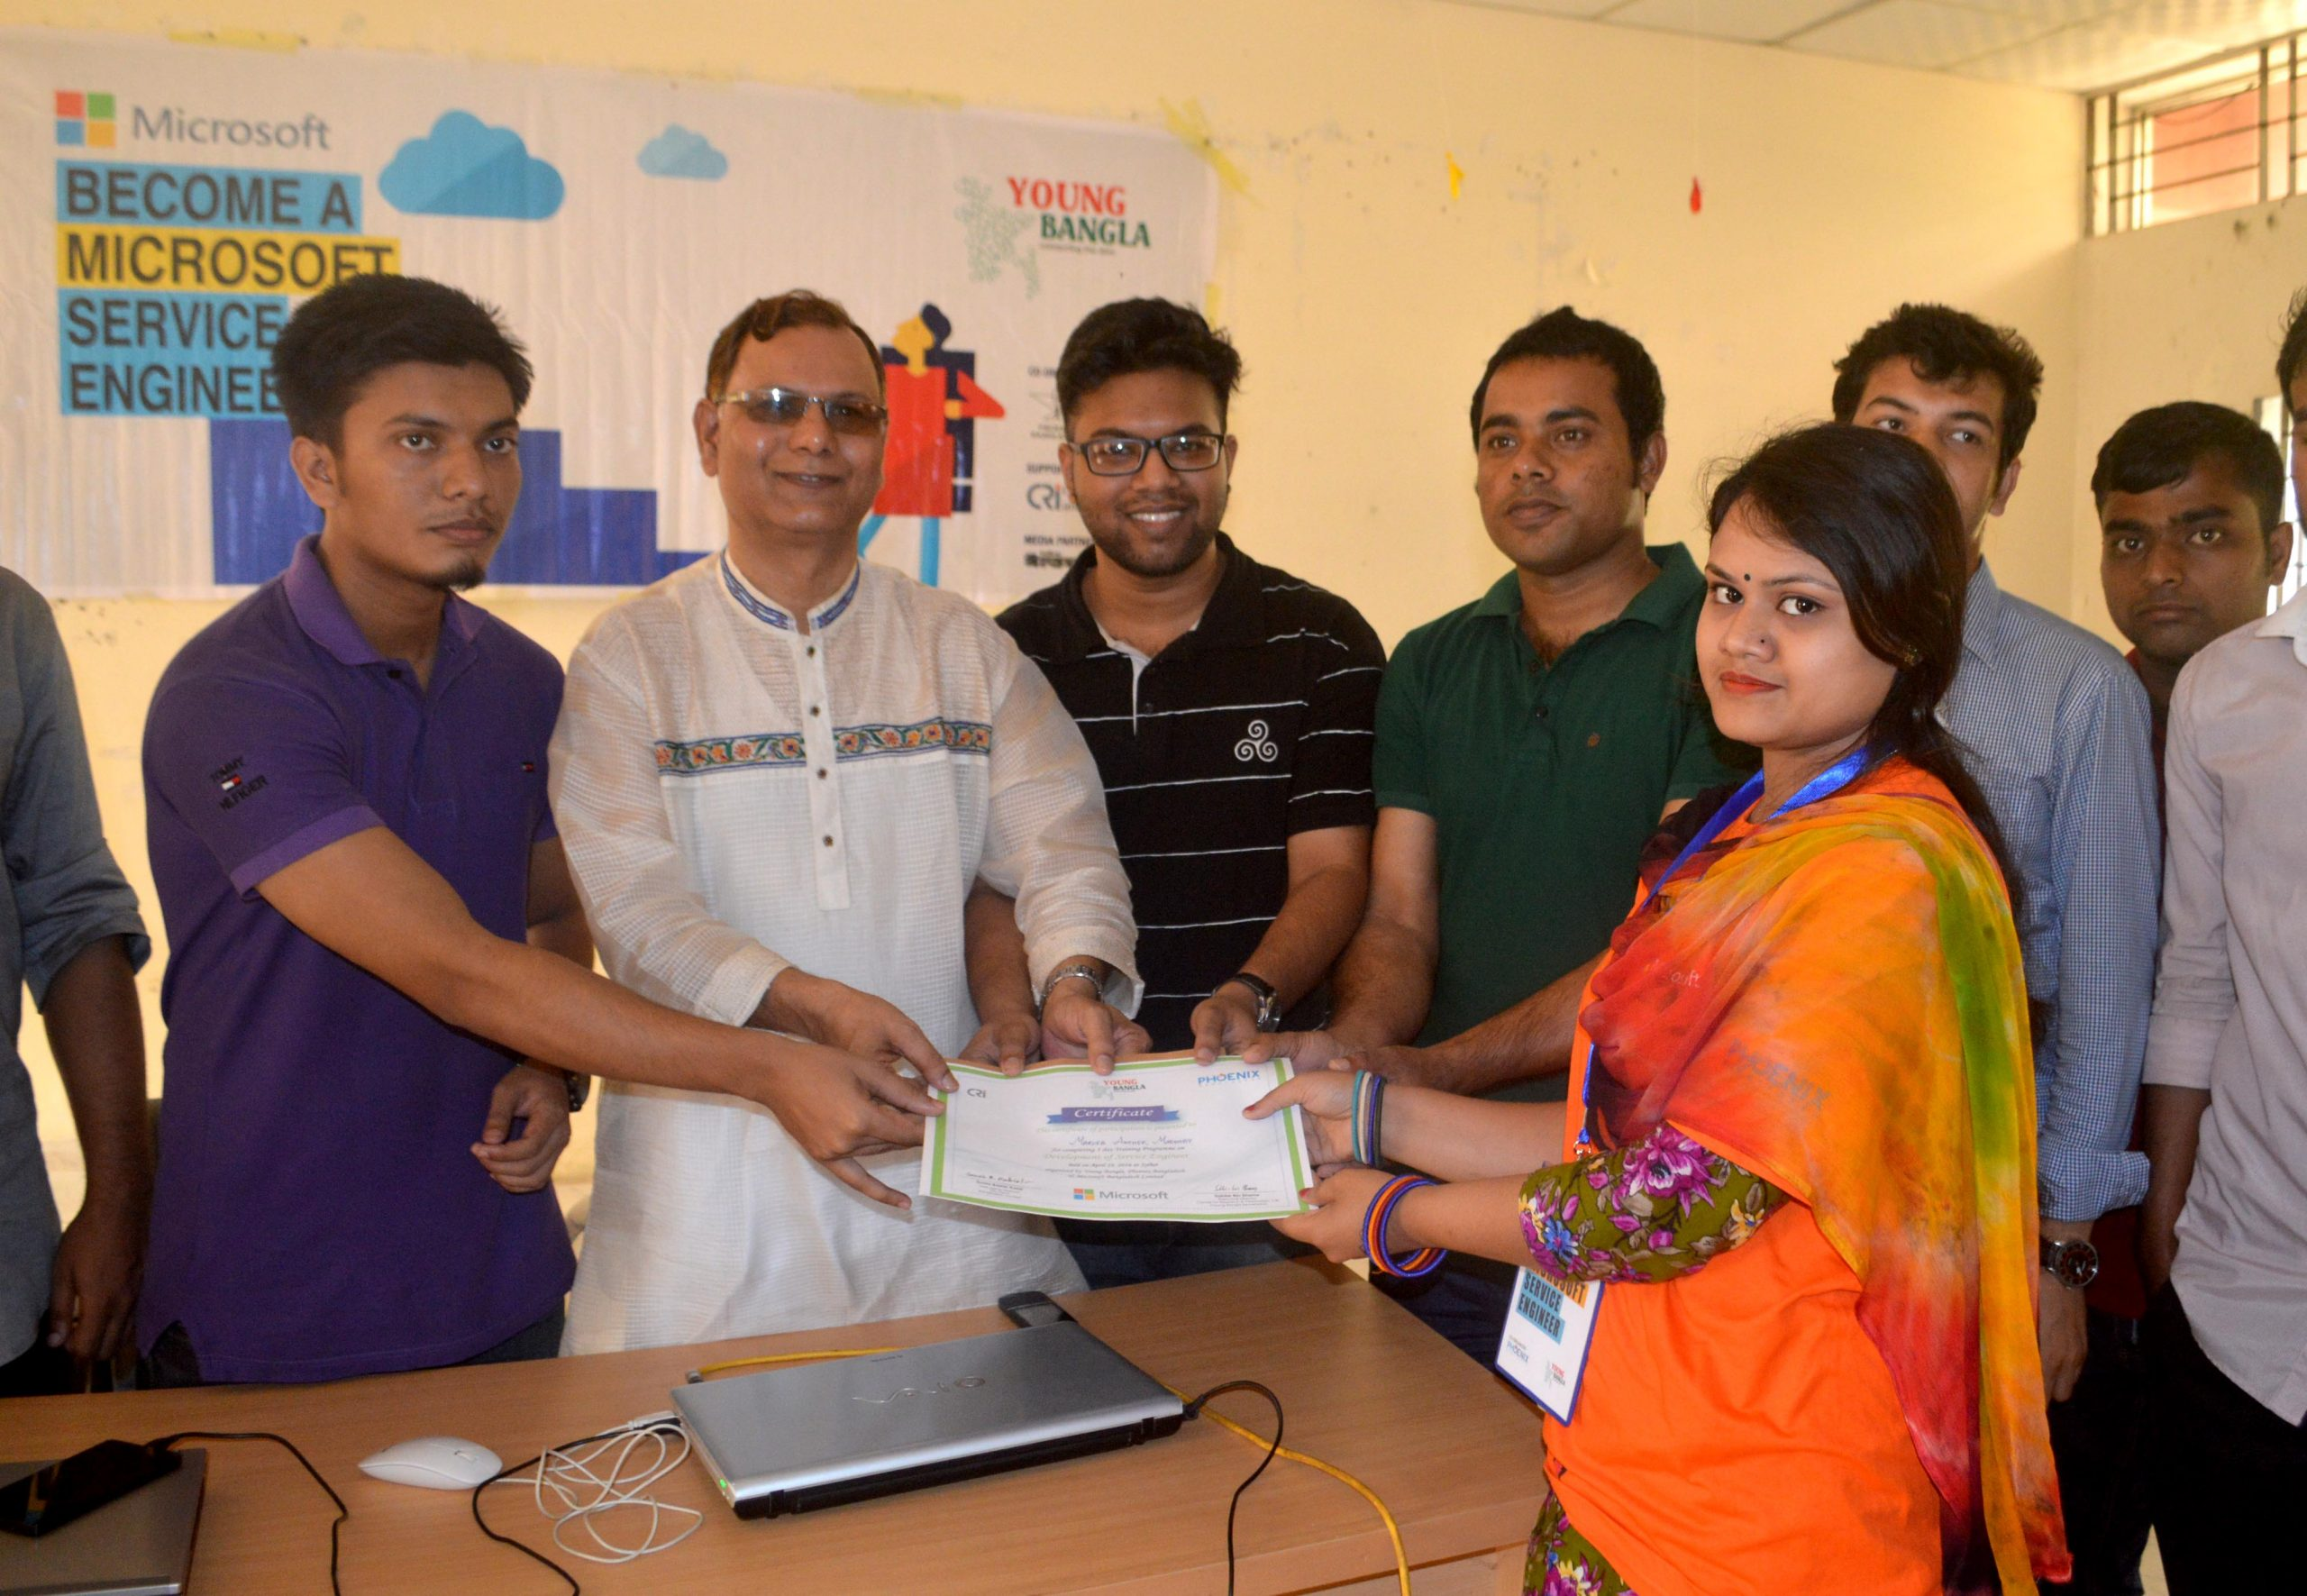 Young Bangla Continues Microsoft Service Engineer Development Program in Sylhet